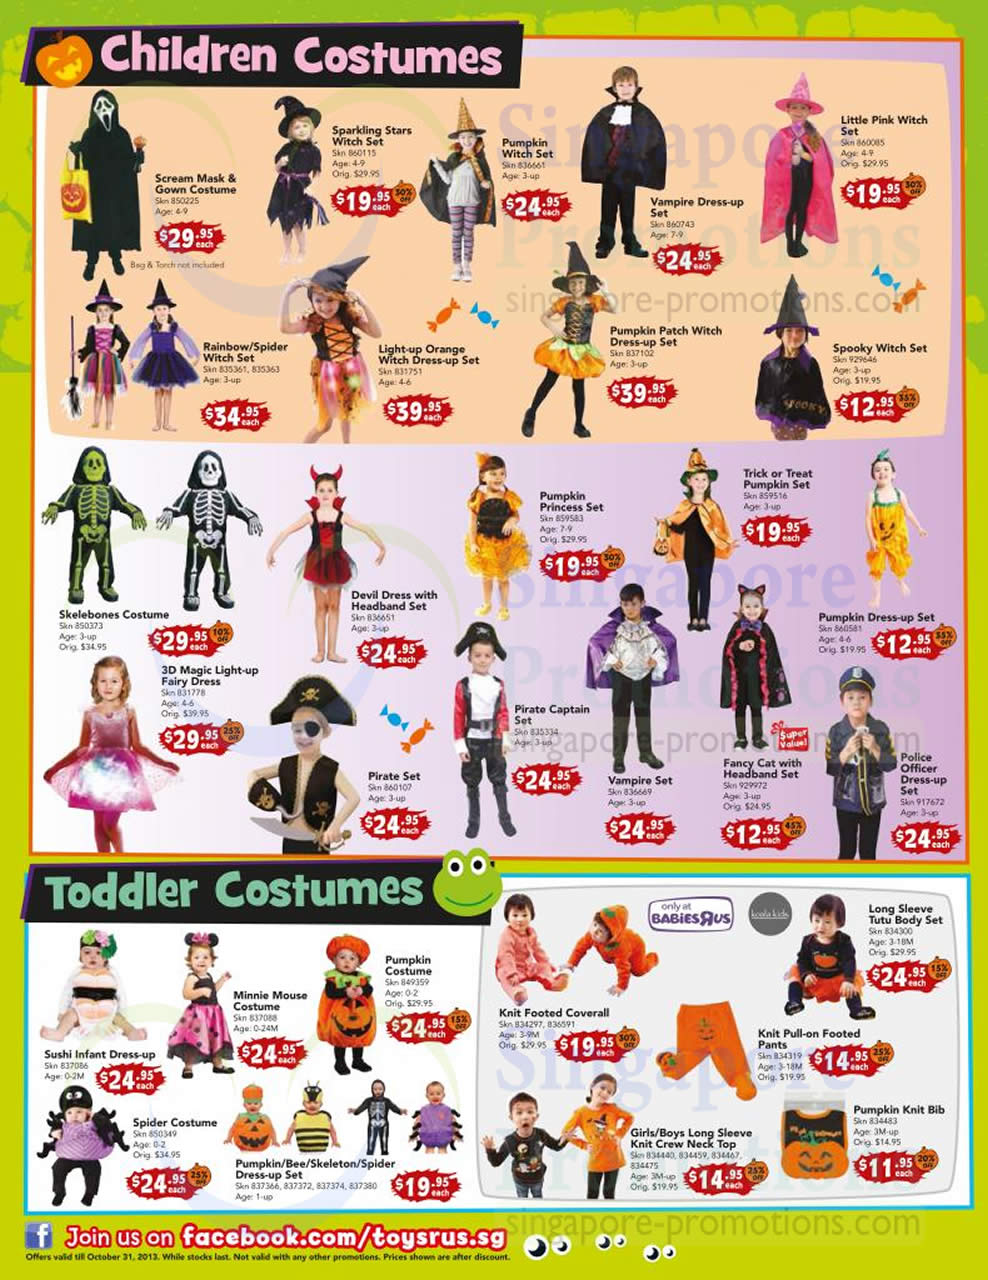 Children Costumes Toddler Costumes Babies R Us  sc 1 st  Singapore Promotions & Children Costumes Toddler Costumes Babies R Us » Toys u201cRu201d Us ...